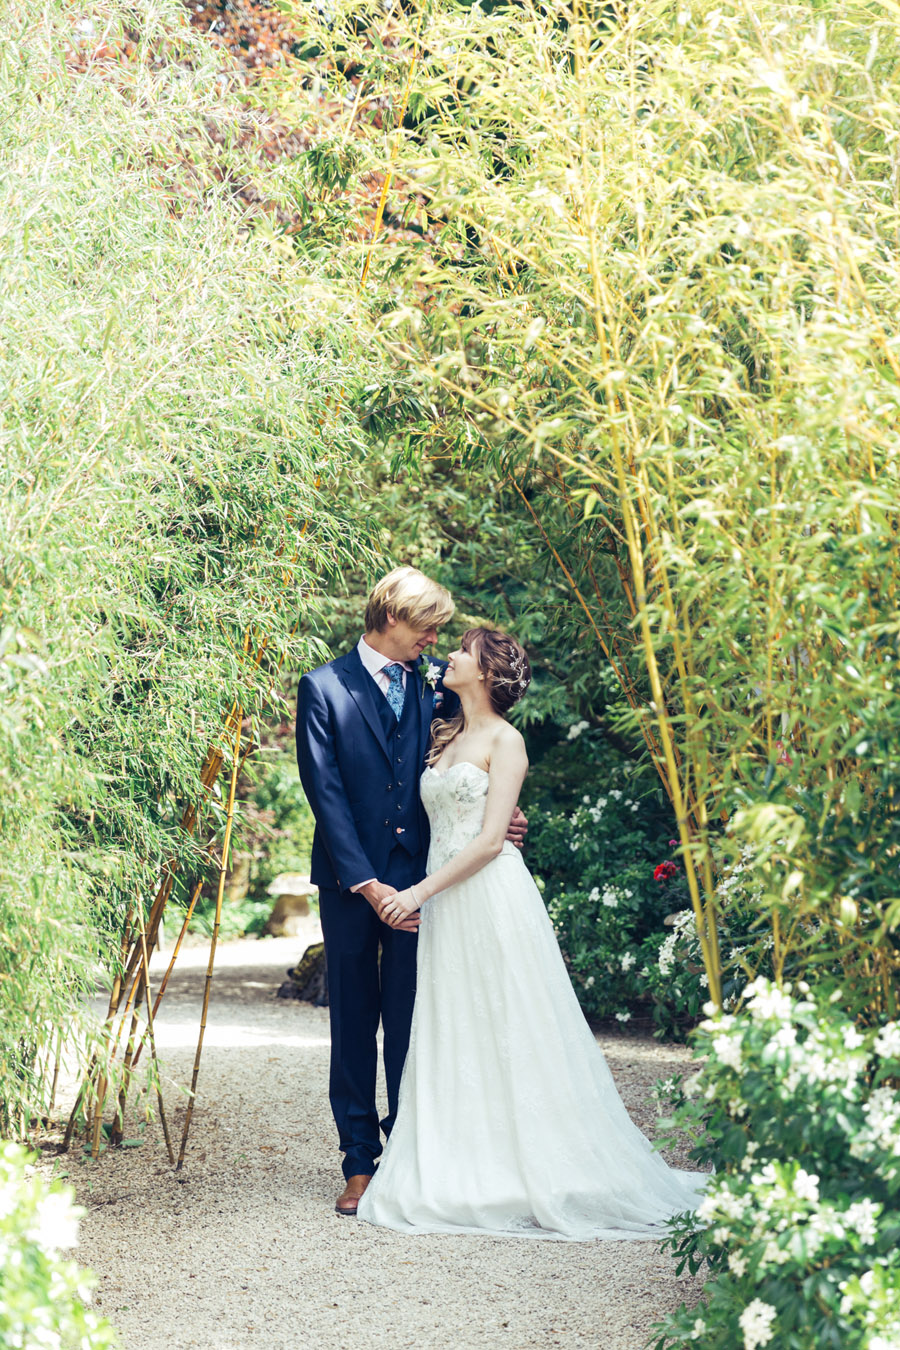 Beautiful wedding dresses in the free-spirited Matara wedding venue - photo credit Sally Anne Photography (9)